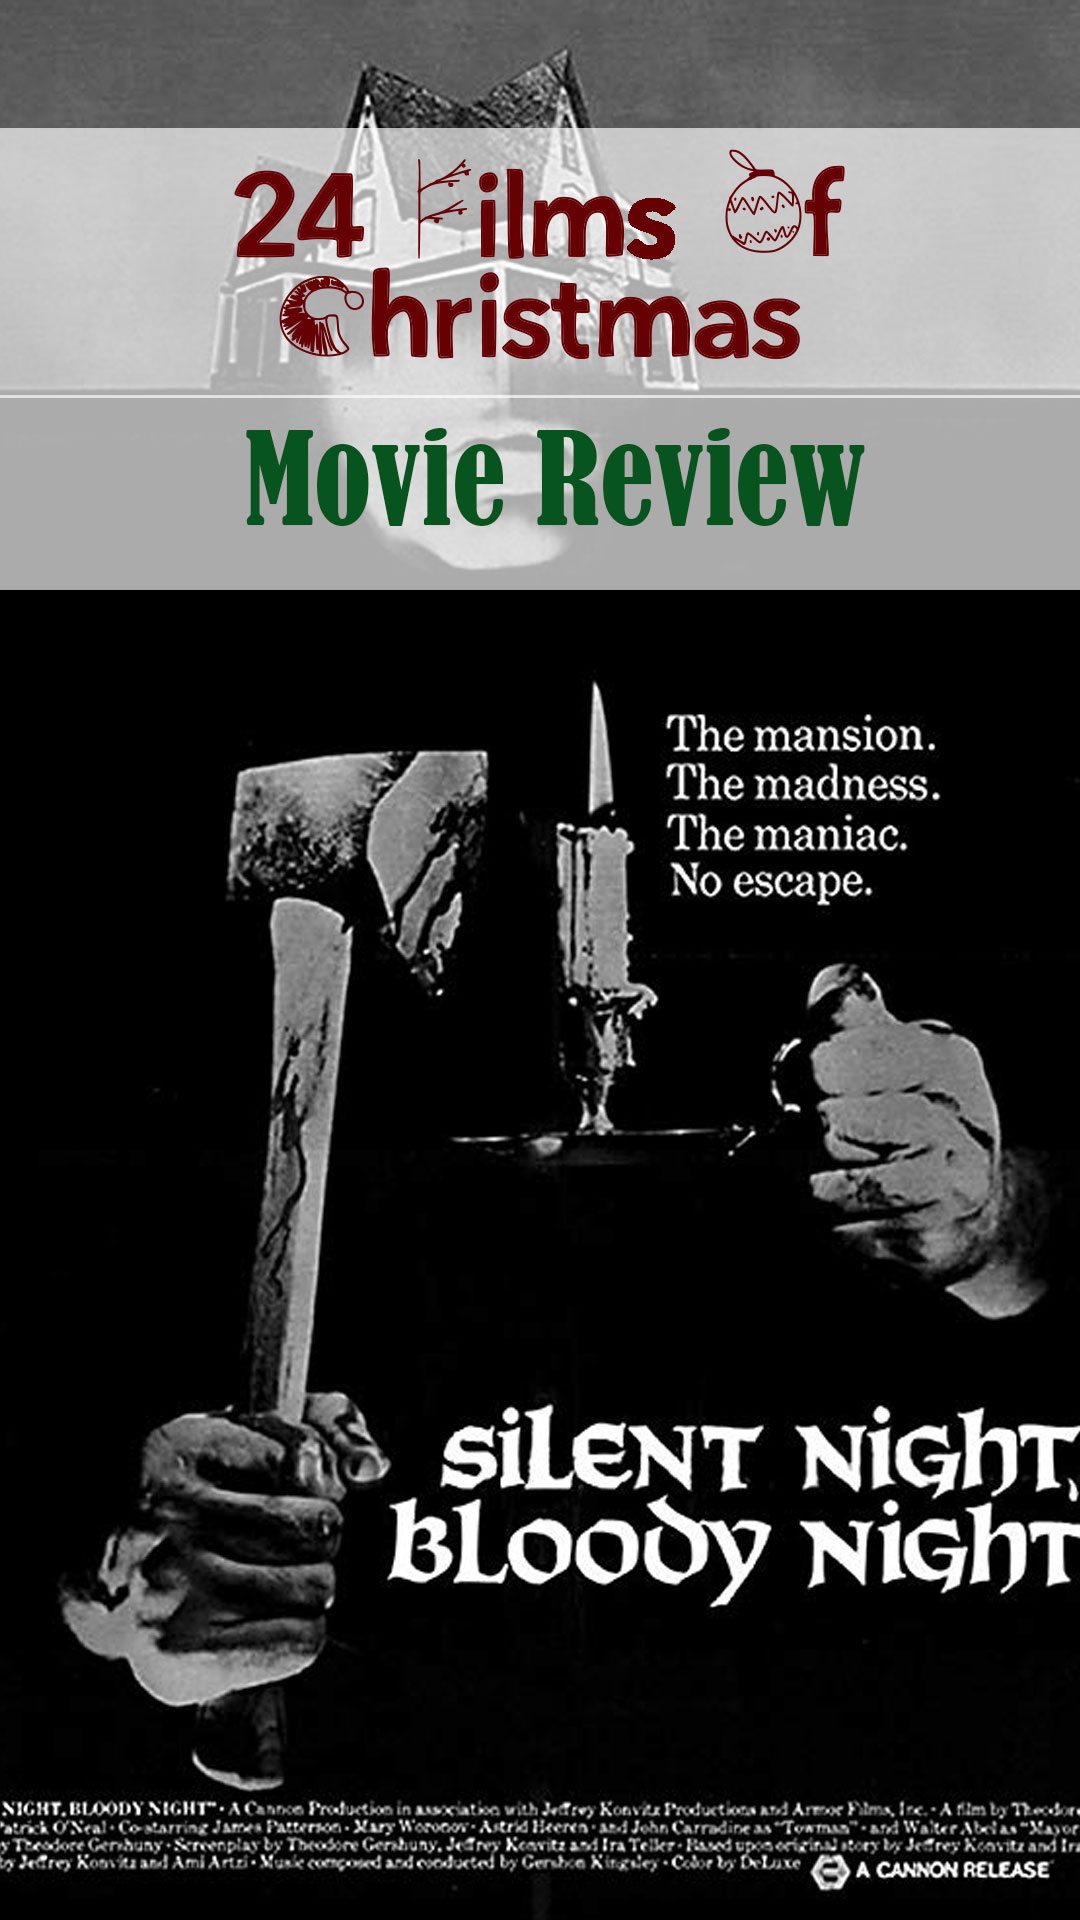 Silent Night, Bloody Night Film Review